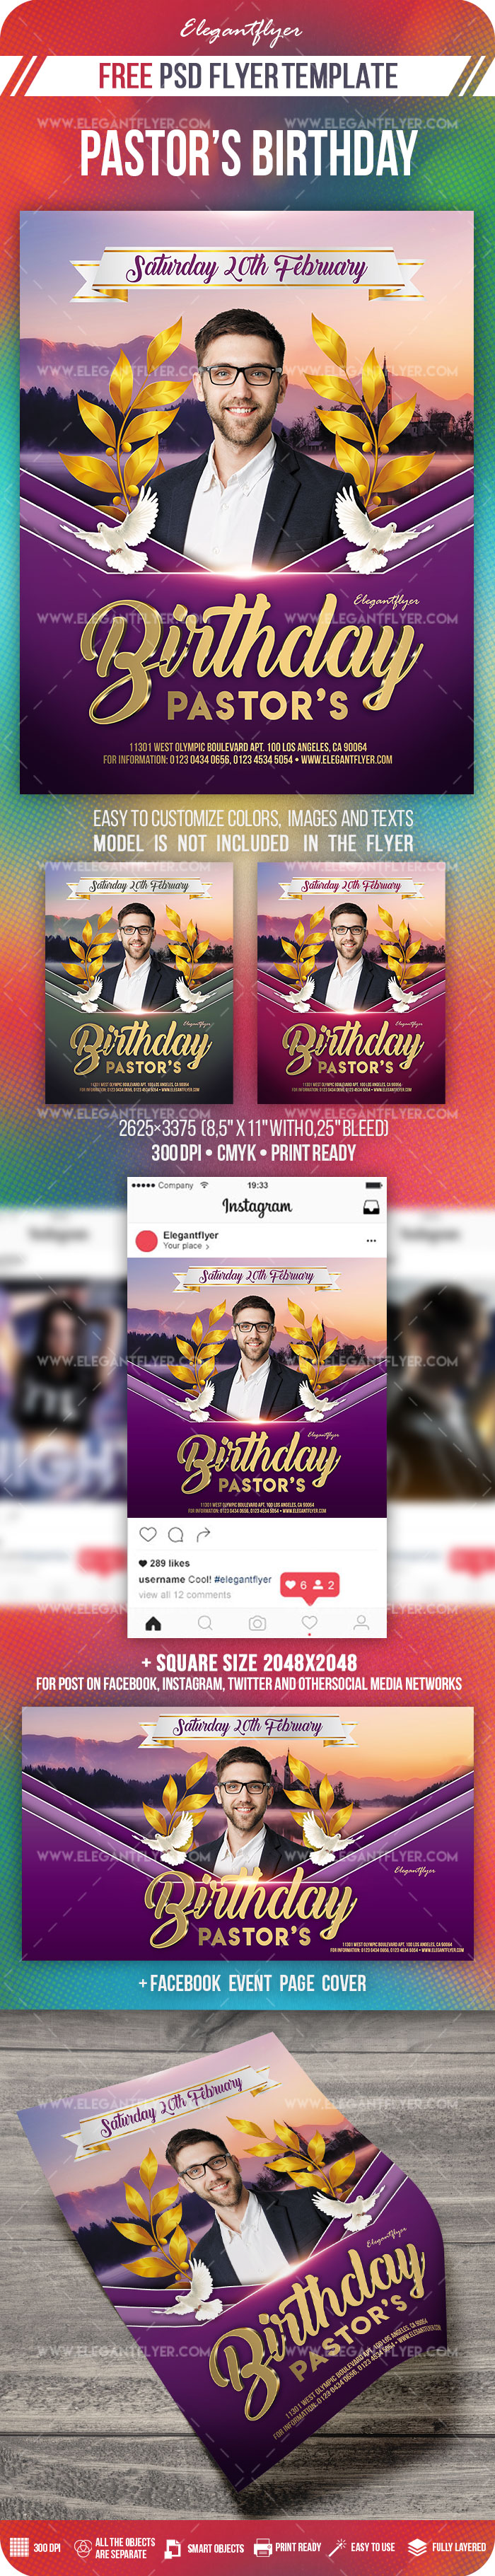 Pastor's Birthday – Free PSD Flyer Template + Facebook Cover + Instagram Post